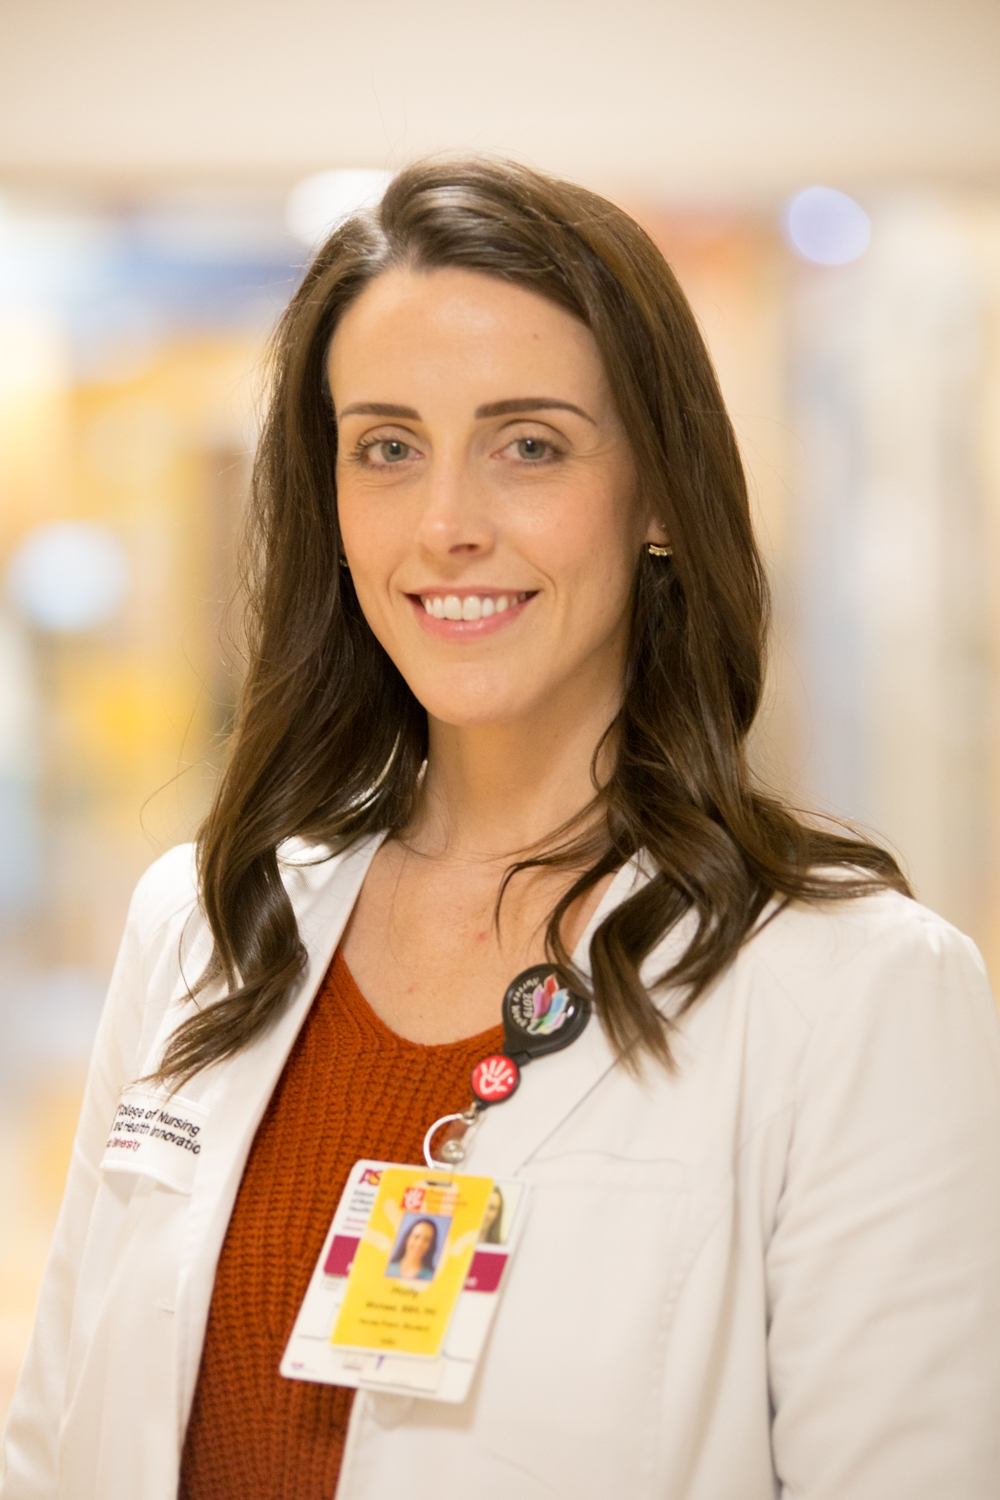 Holly Michael, Acute Care Pediatric DNP Student